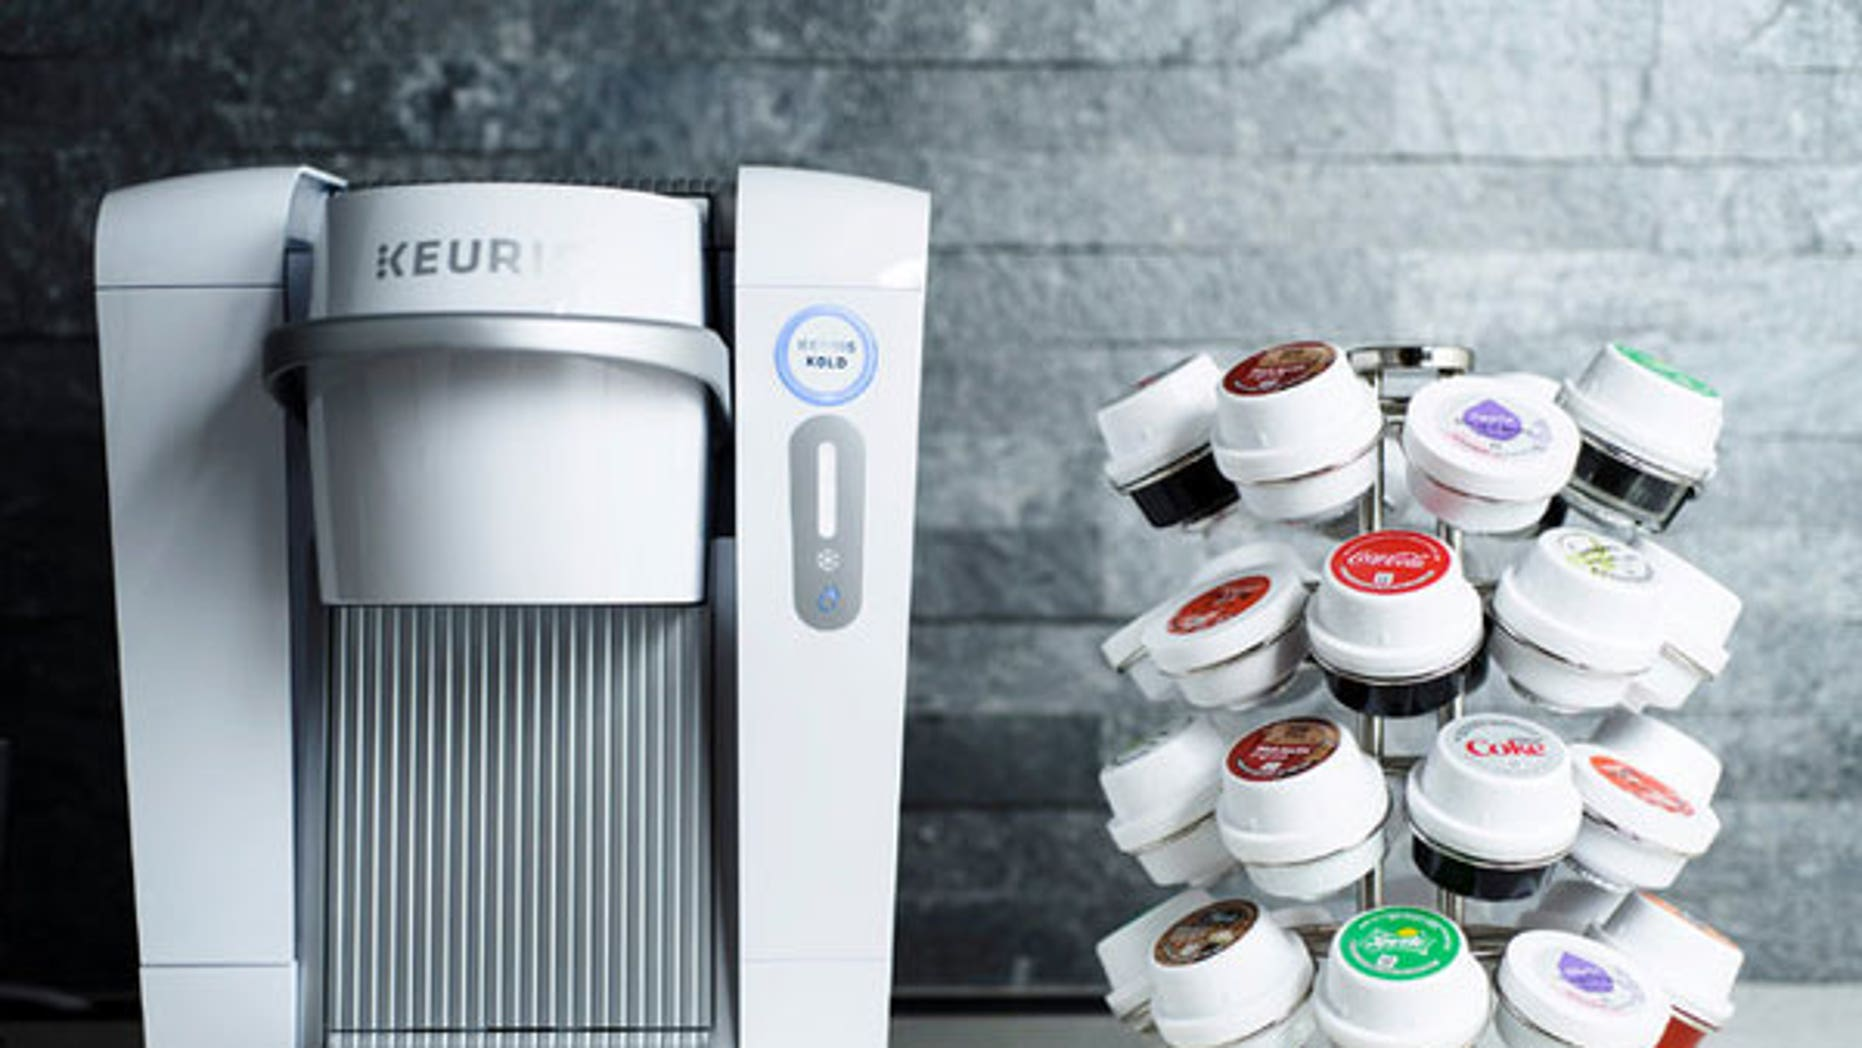 Since its launch last year, the Keurig Kold was derided for being too expensive.